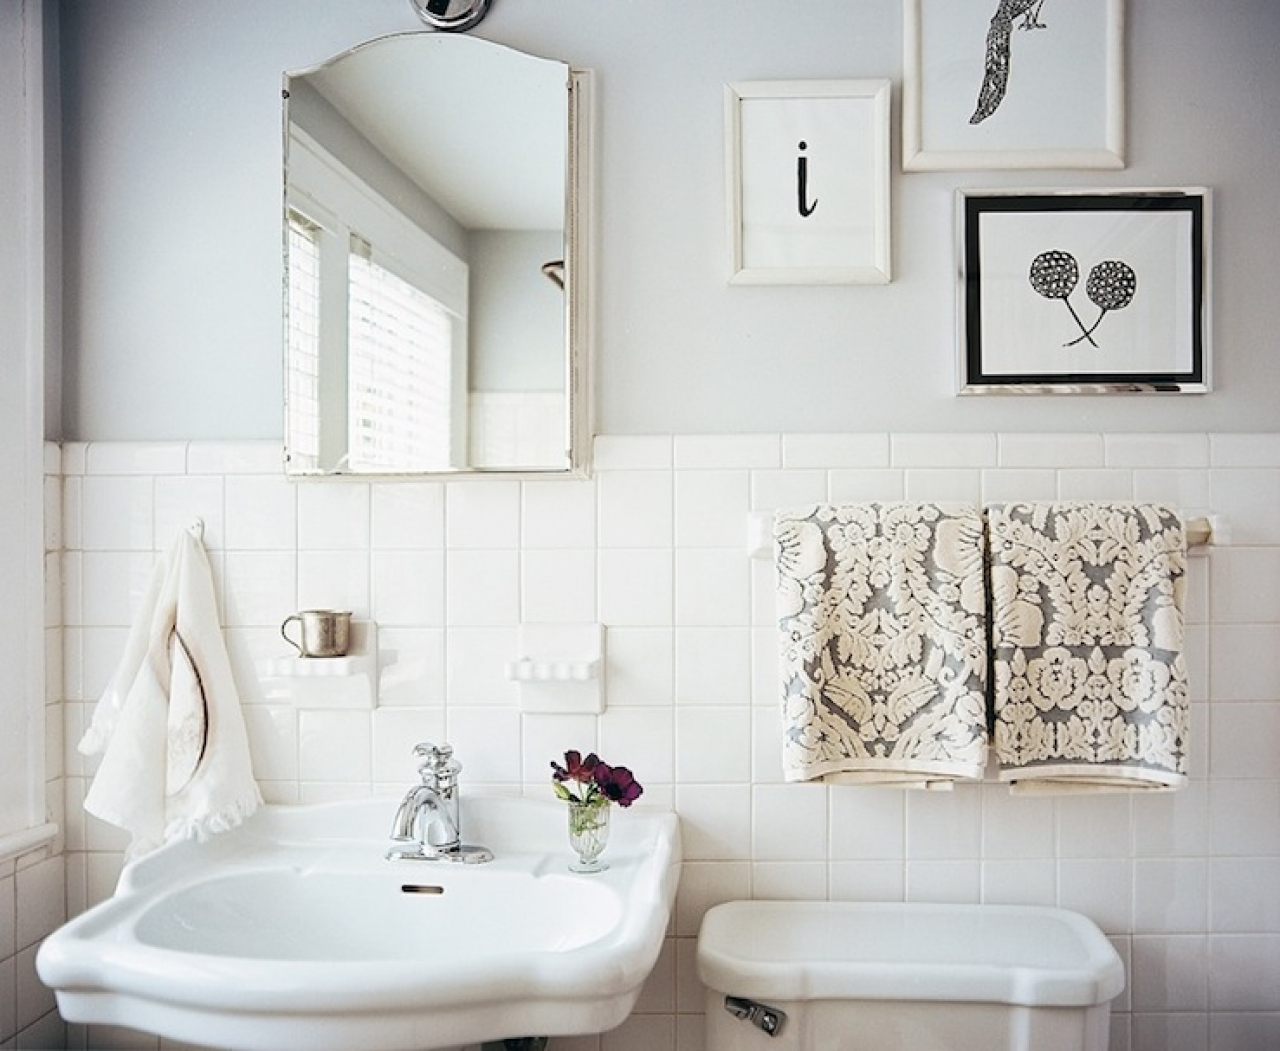 33 amazing pictures and ideas of old fashioned bathroom for Grey and white bathroom accessories